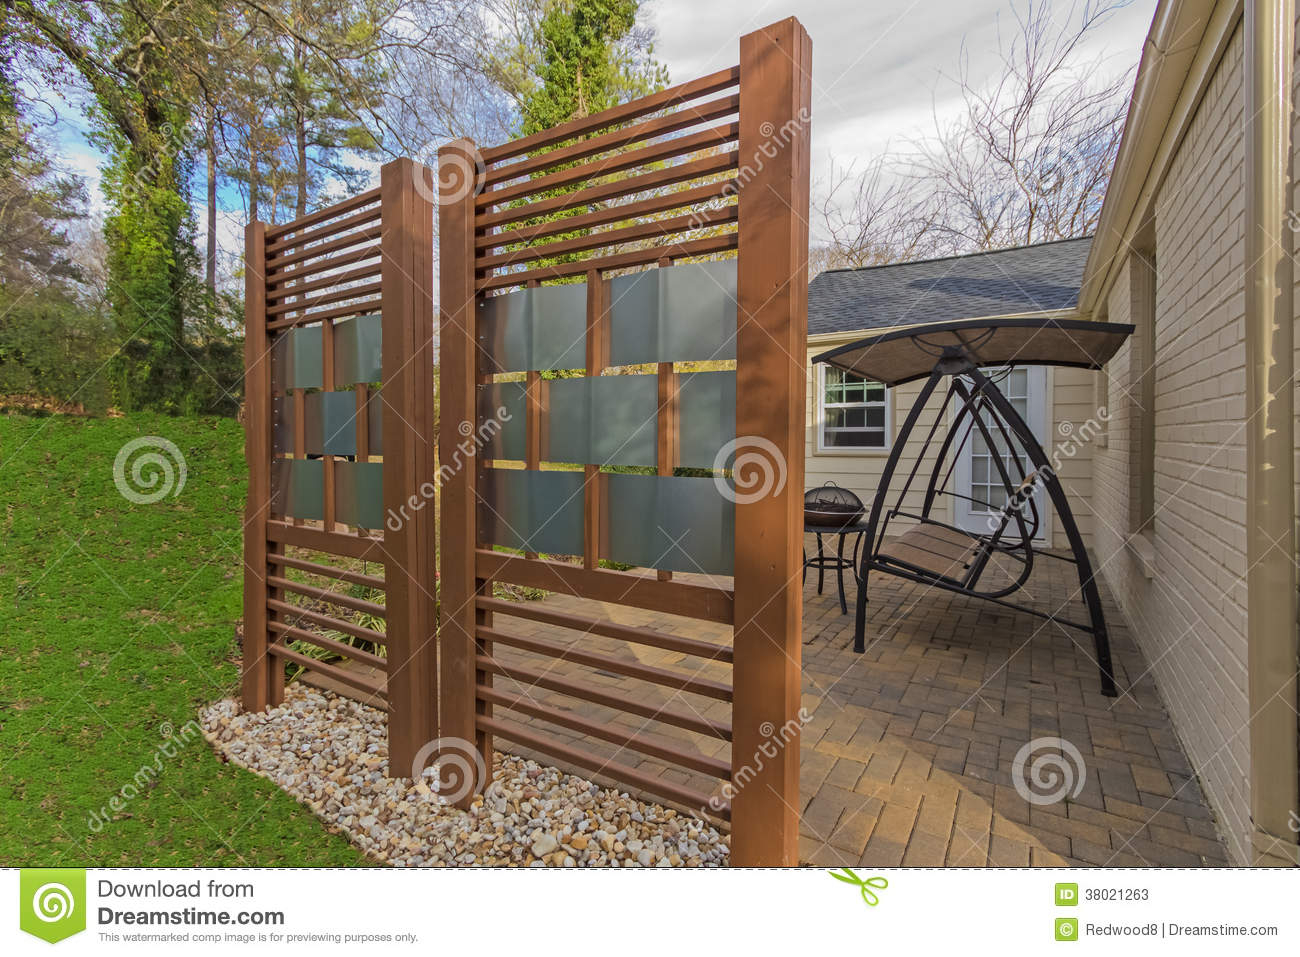 Backyard Patio With Diy Privacy Fence Stock Image Image Of Brick throughout 13 Clever Concepts of How to Craft Privacy Fences For Backyards